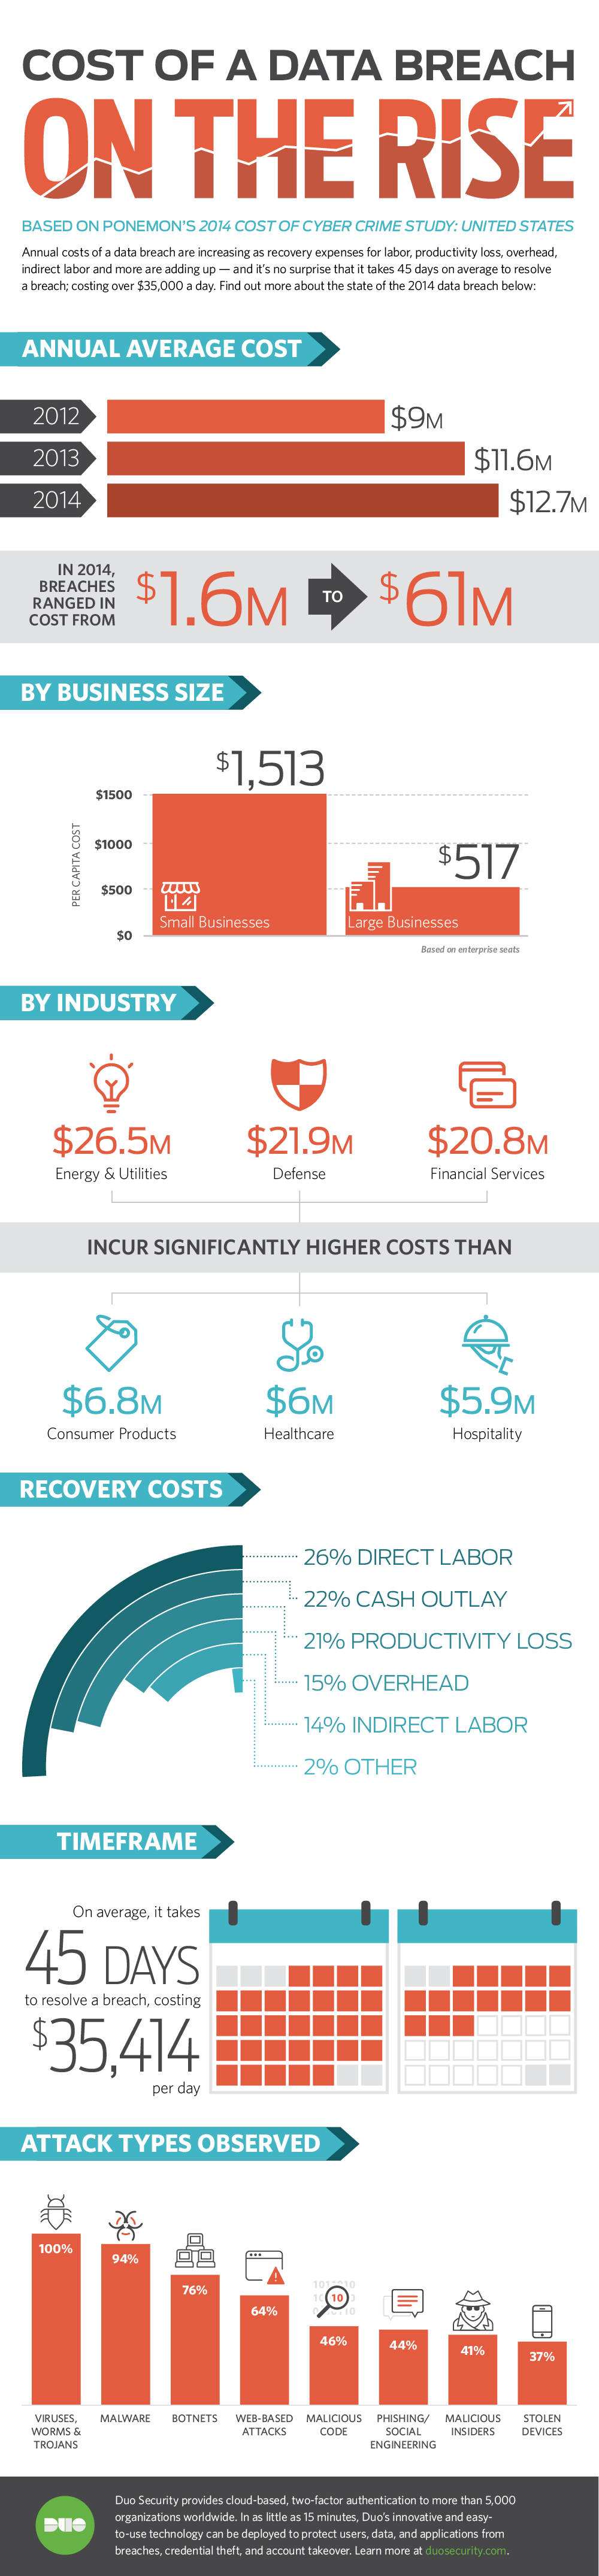 Cost of a Data Breach Infographic